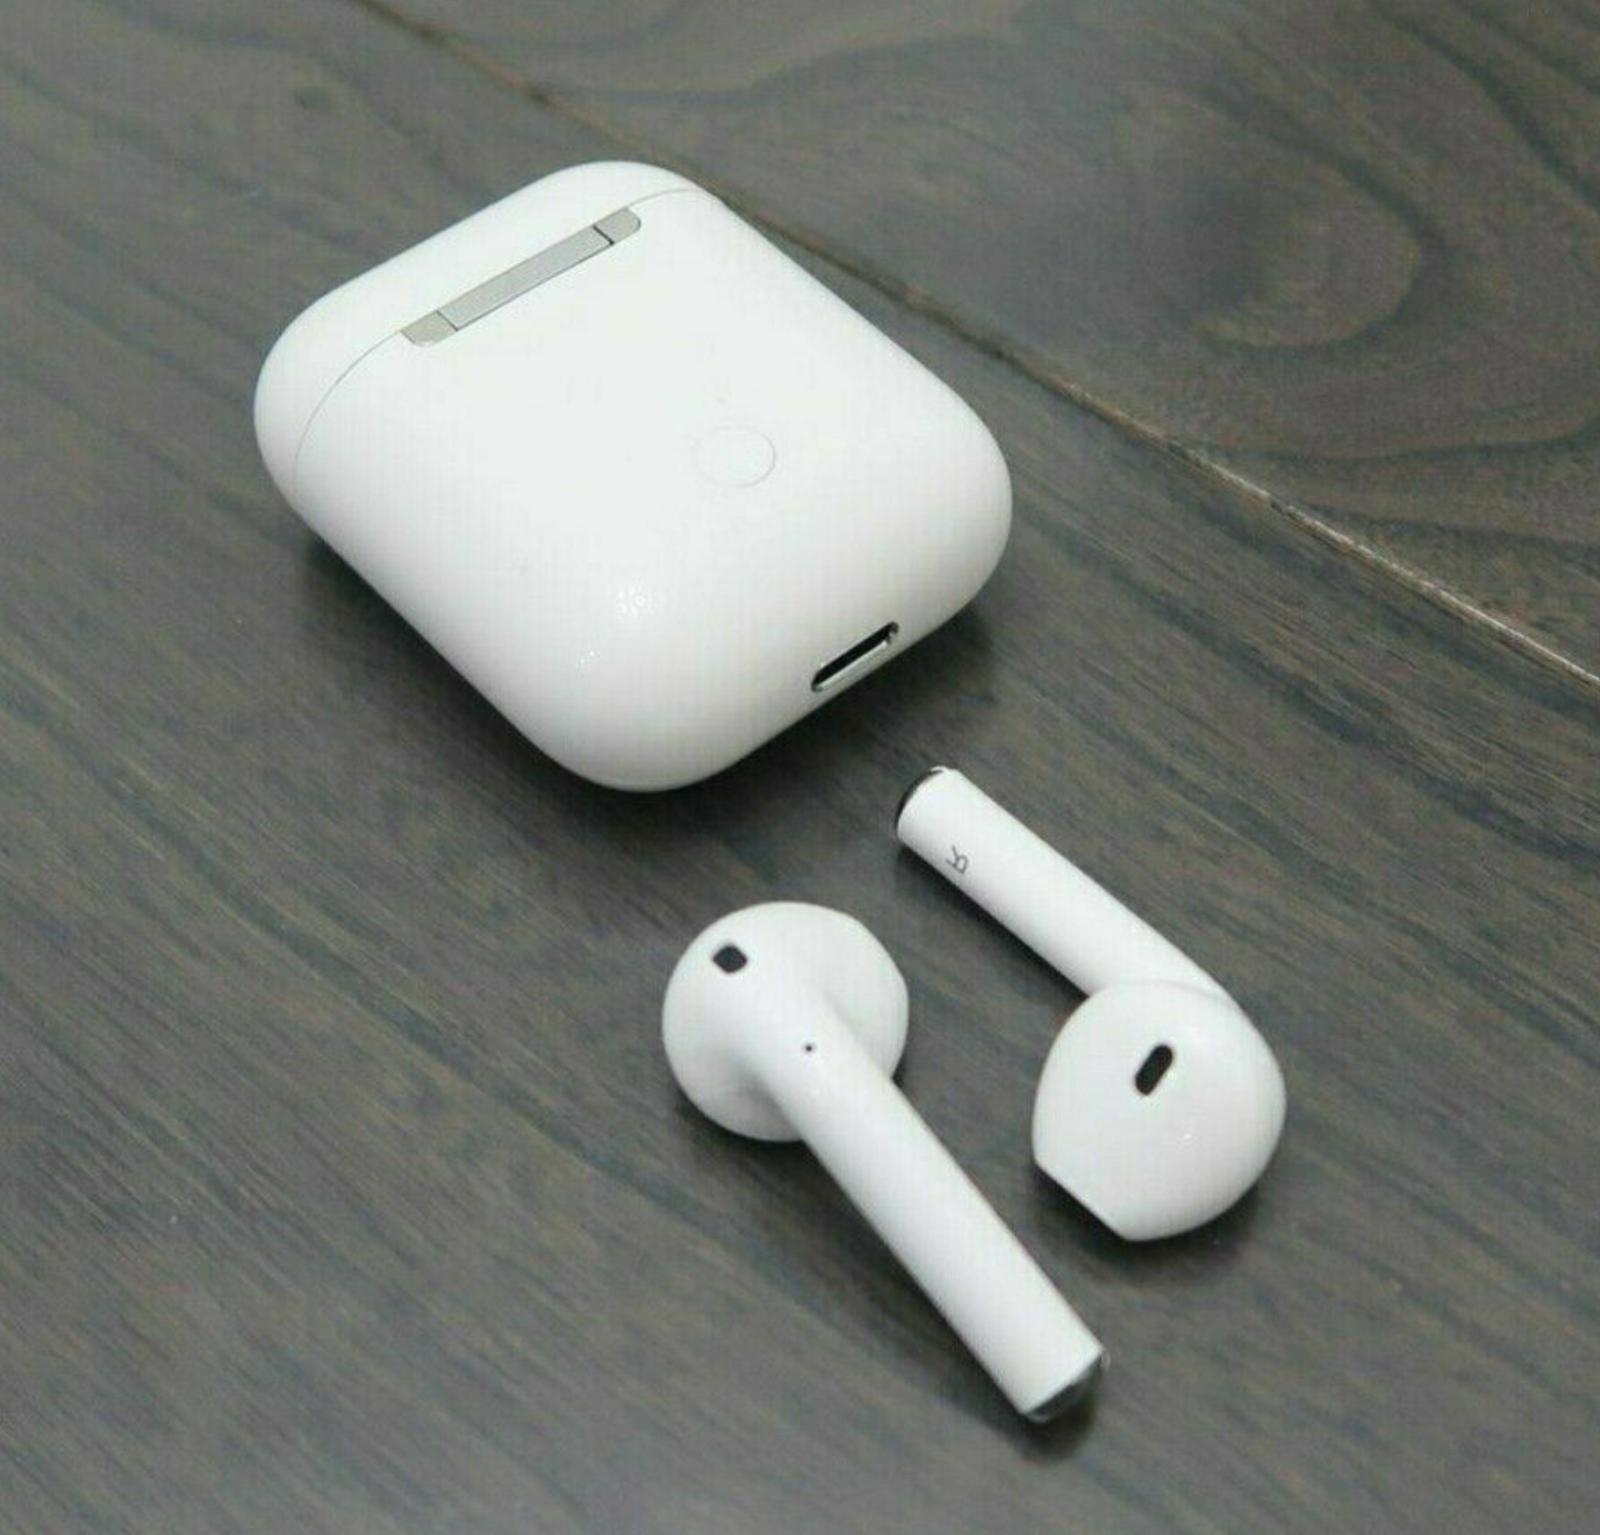 2019 Headphones Wireless Earbuds Headset With Microphone